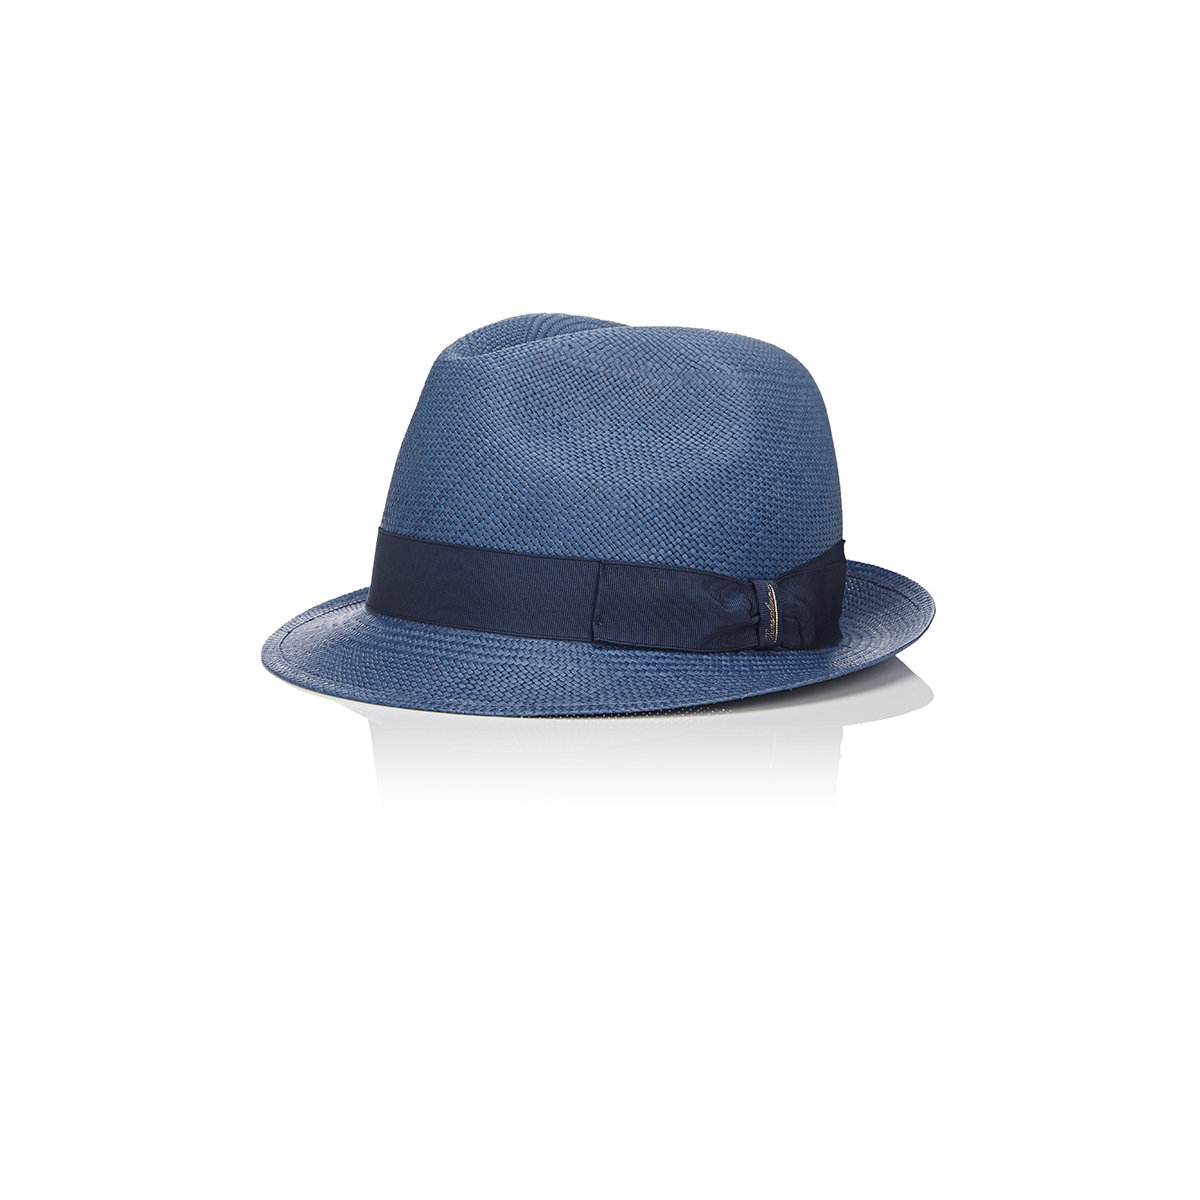 Shantung Straw Fedora Hat is a stunning new addition to Carlos Santana's eclectic collection of straw fedora hats. Blocked into a classic pinch front fedora style, the Brahman boasts a lightly vented navy blue crown offset with striking diagonal, natural-toned